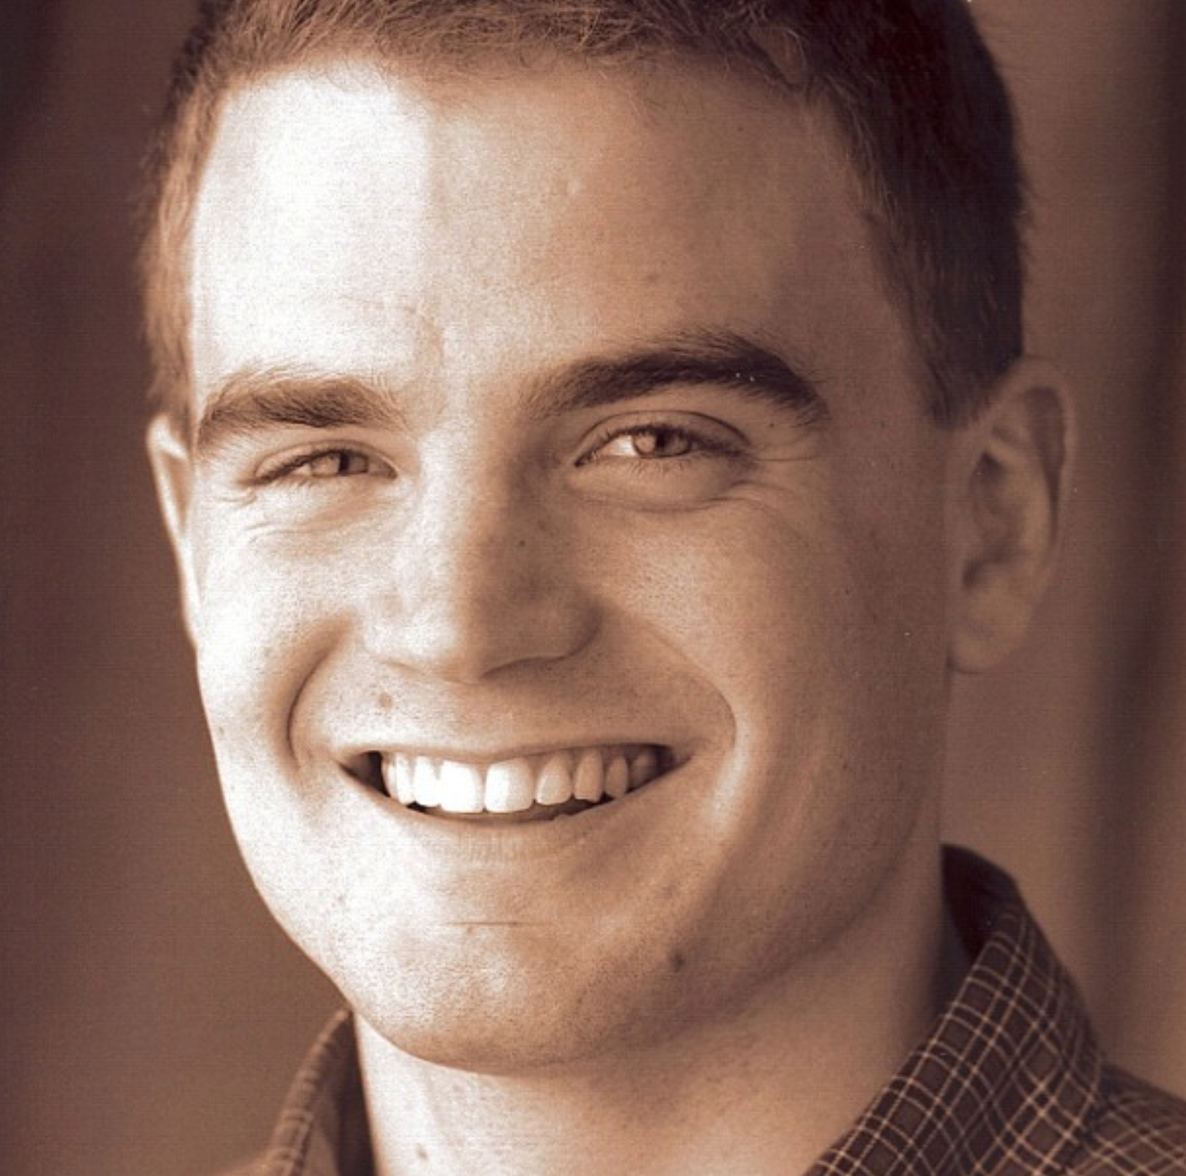 Chris Mello was 25 when he died on Sept. 11, 2001.